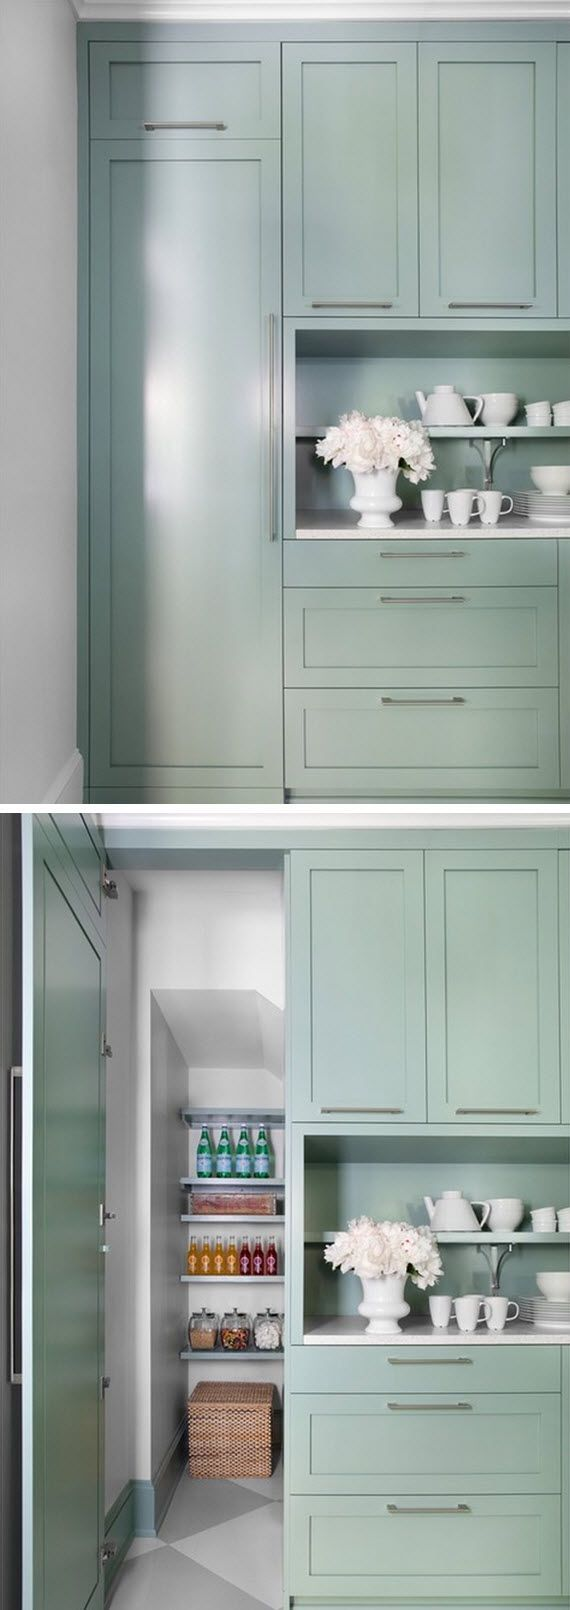 kitchen pantry under the stairs - brilliant use of space! #kitchens #pantry